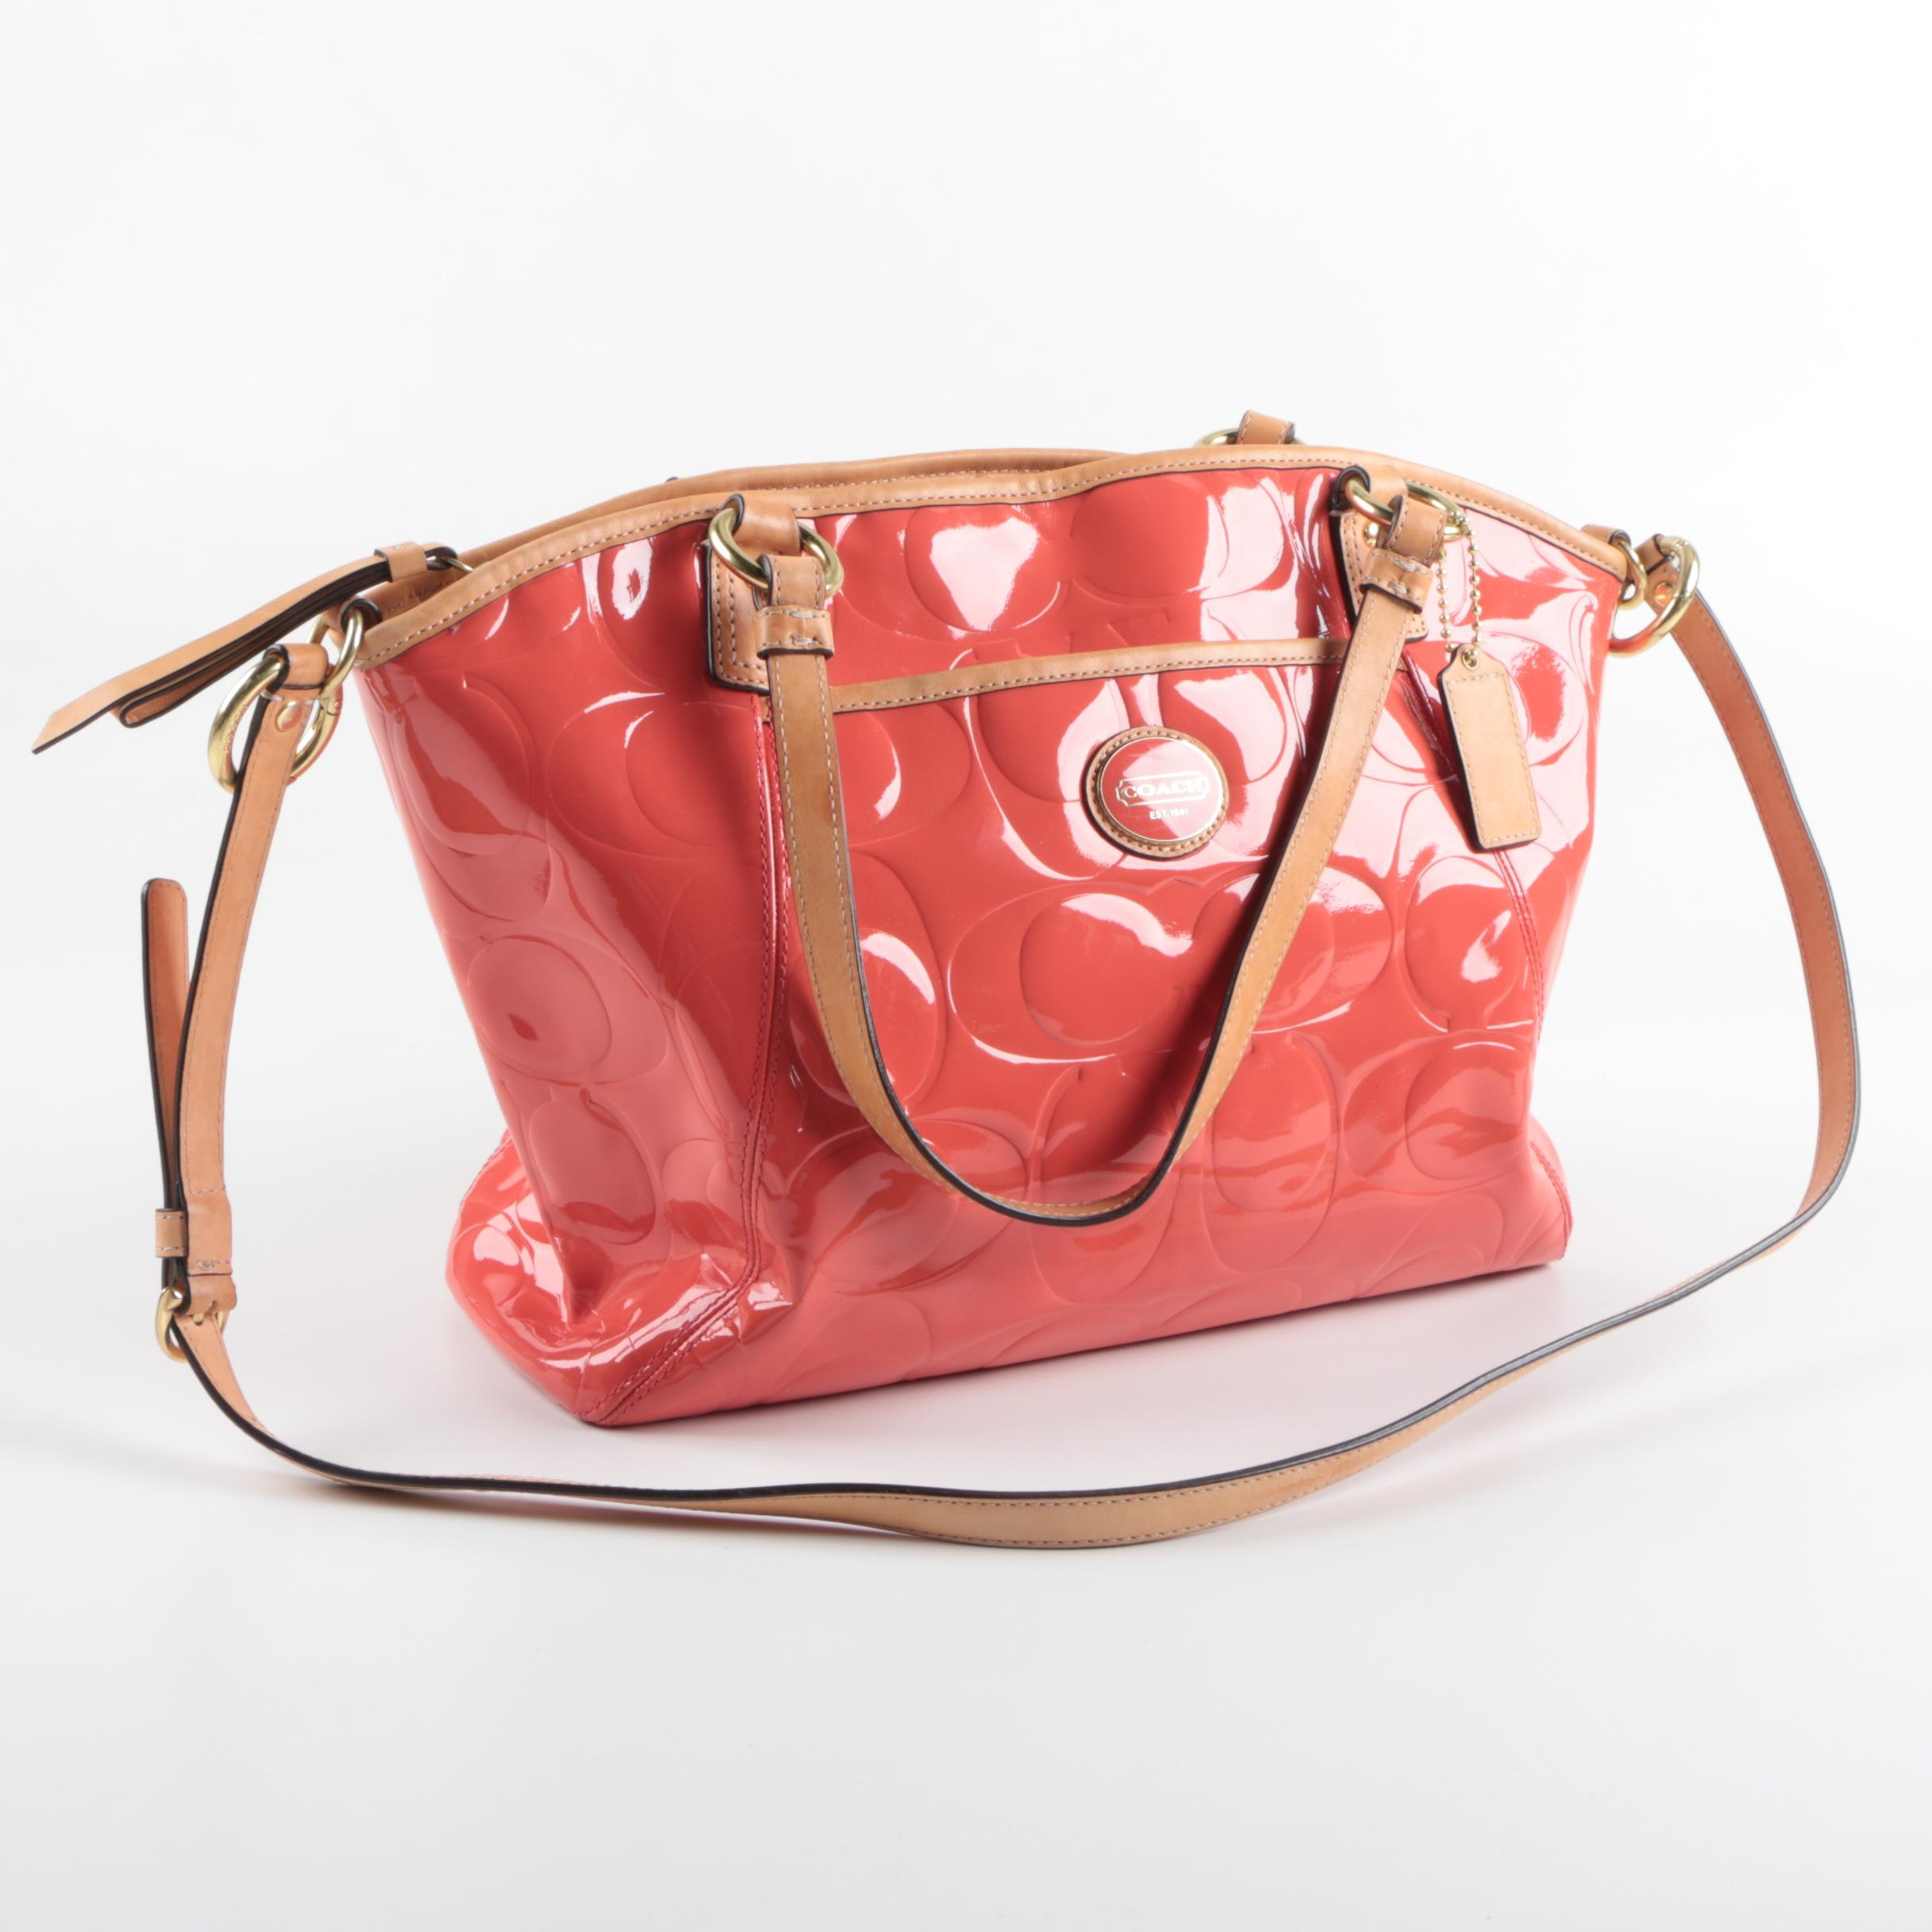 Coach Peyton Signature Patent Leather Tote